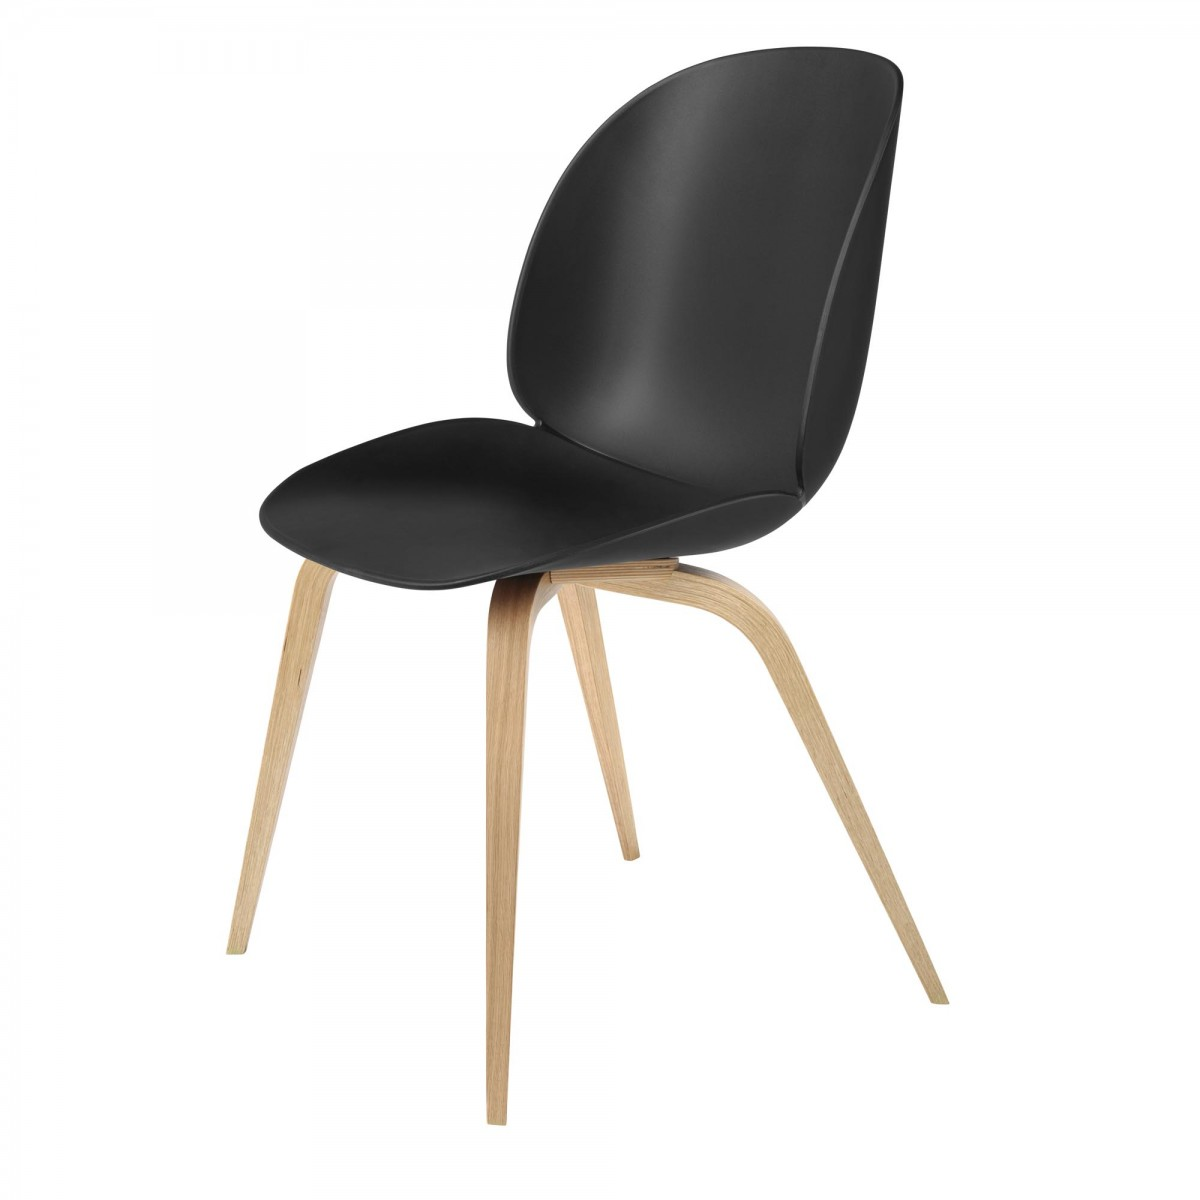 BEETLE dining chair black amp oak Gubi : beetle dining chair black oak from www.moncolonel.fr size 1200 x 1200 jpeg 59kB